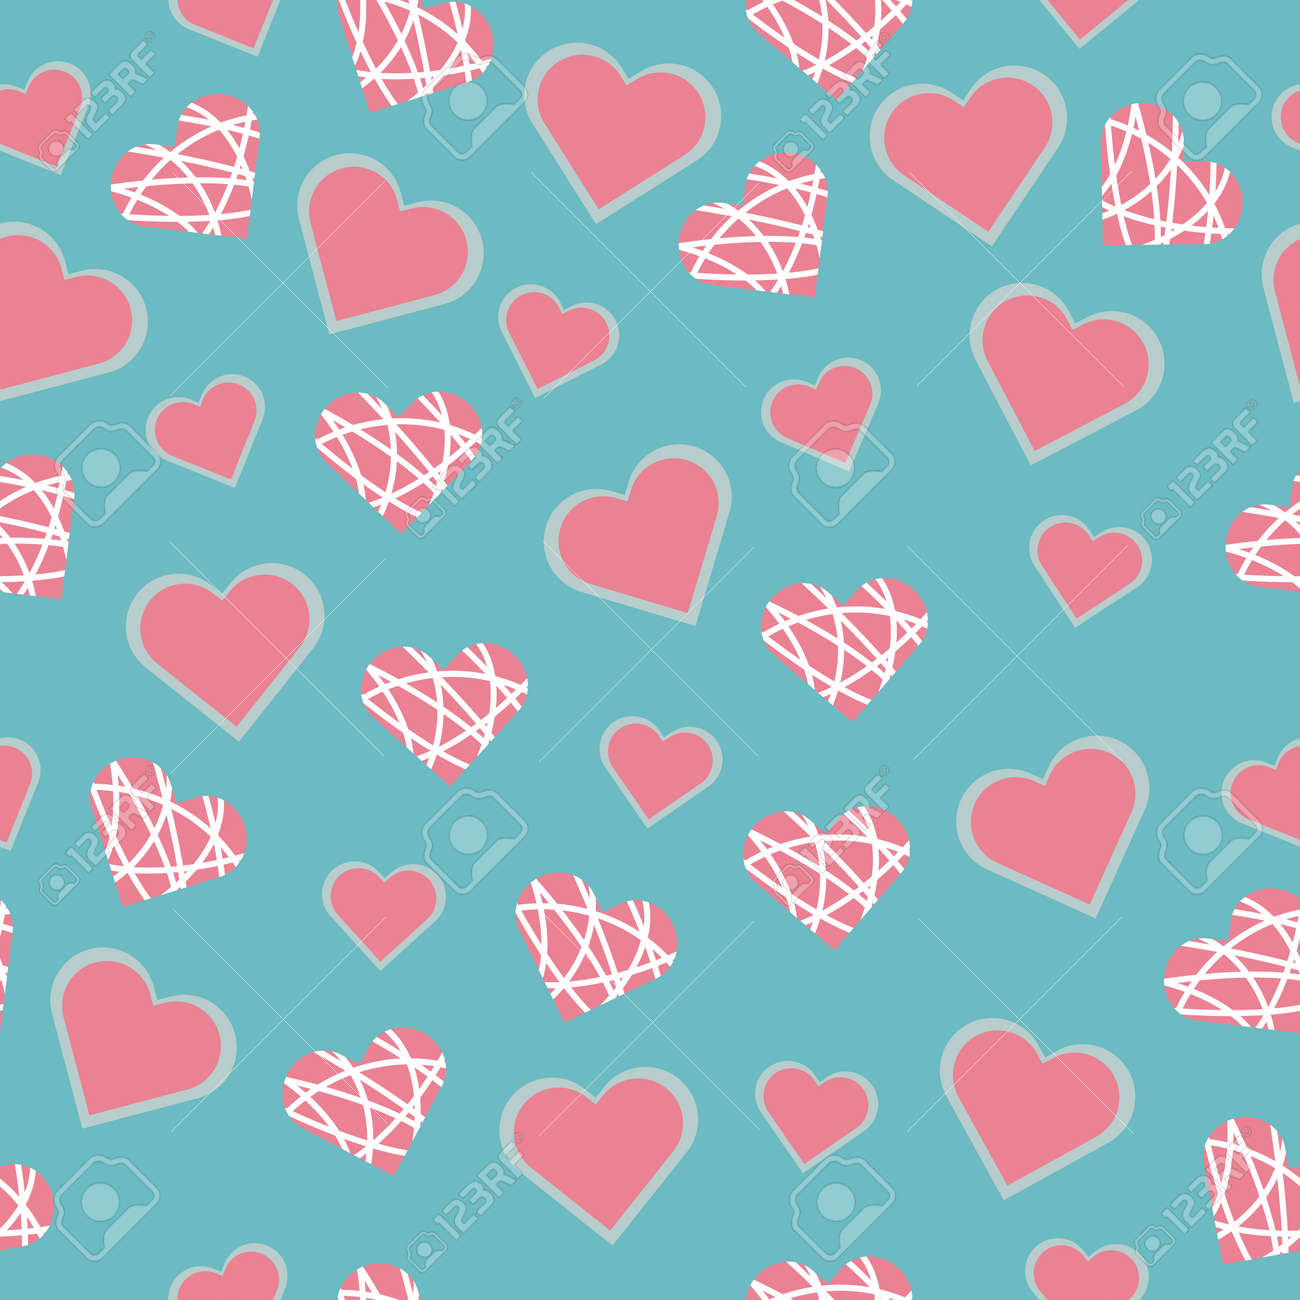 Seamless vector pattern with heart pink shapes for Valentine's Day holiday - 161212621